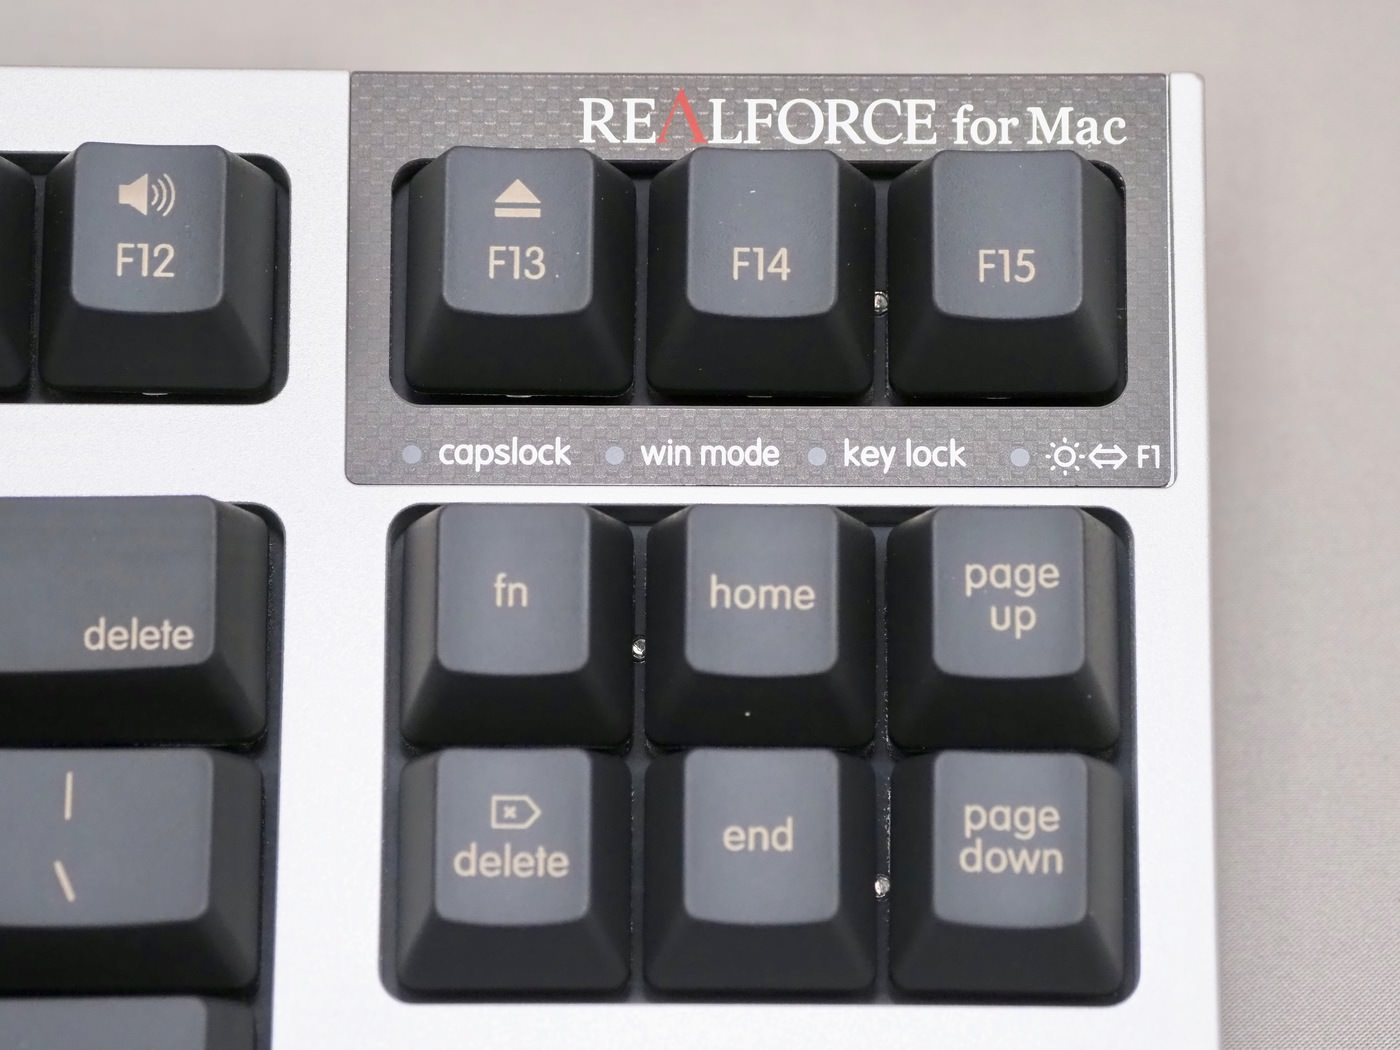 realforce-tkl-for-mac-pfu-limited-edition-review_00009